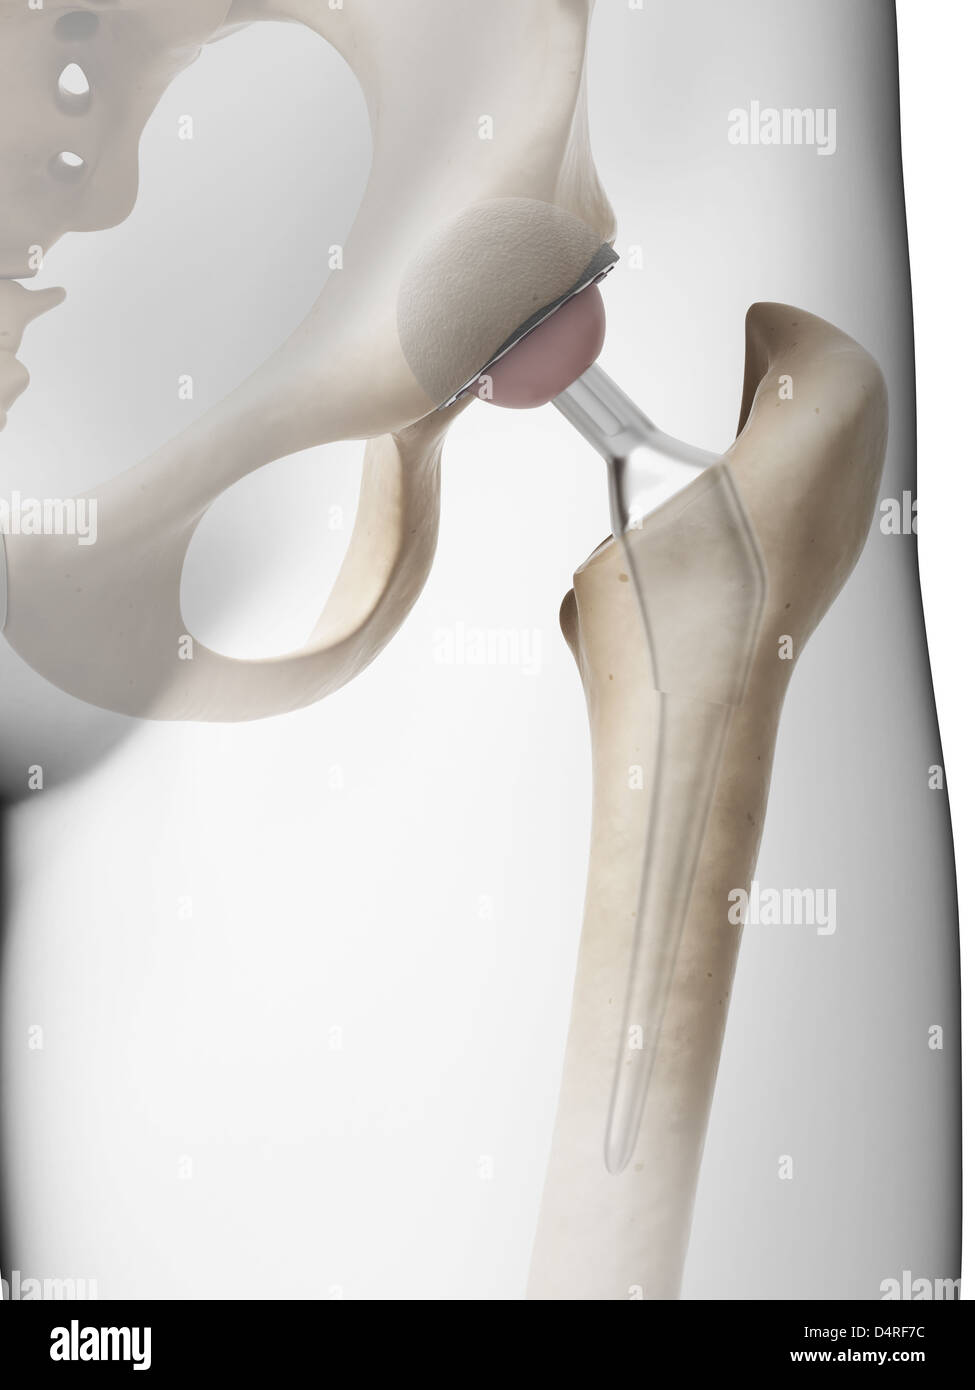 Hip replacement - Stock Image